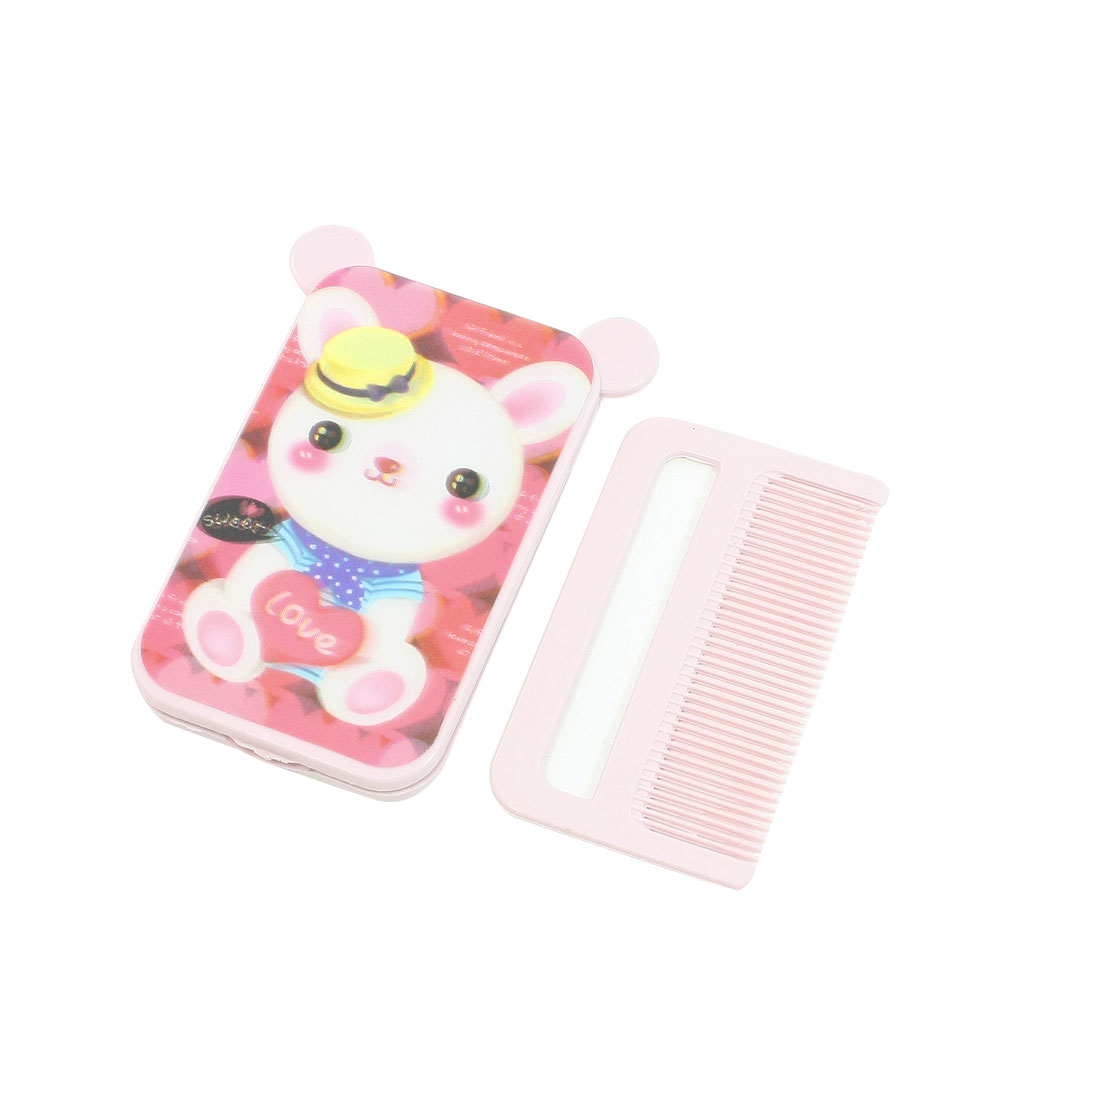 Protable Rectangle Pink Housing Foldaway Make Up Mirror Comb Gift for Woman